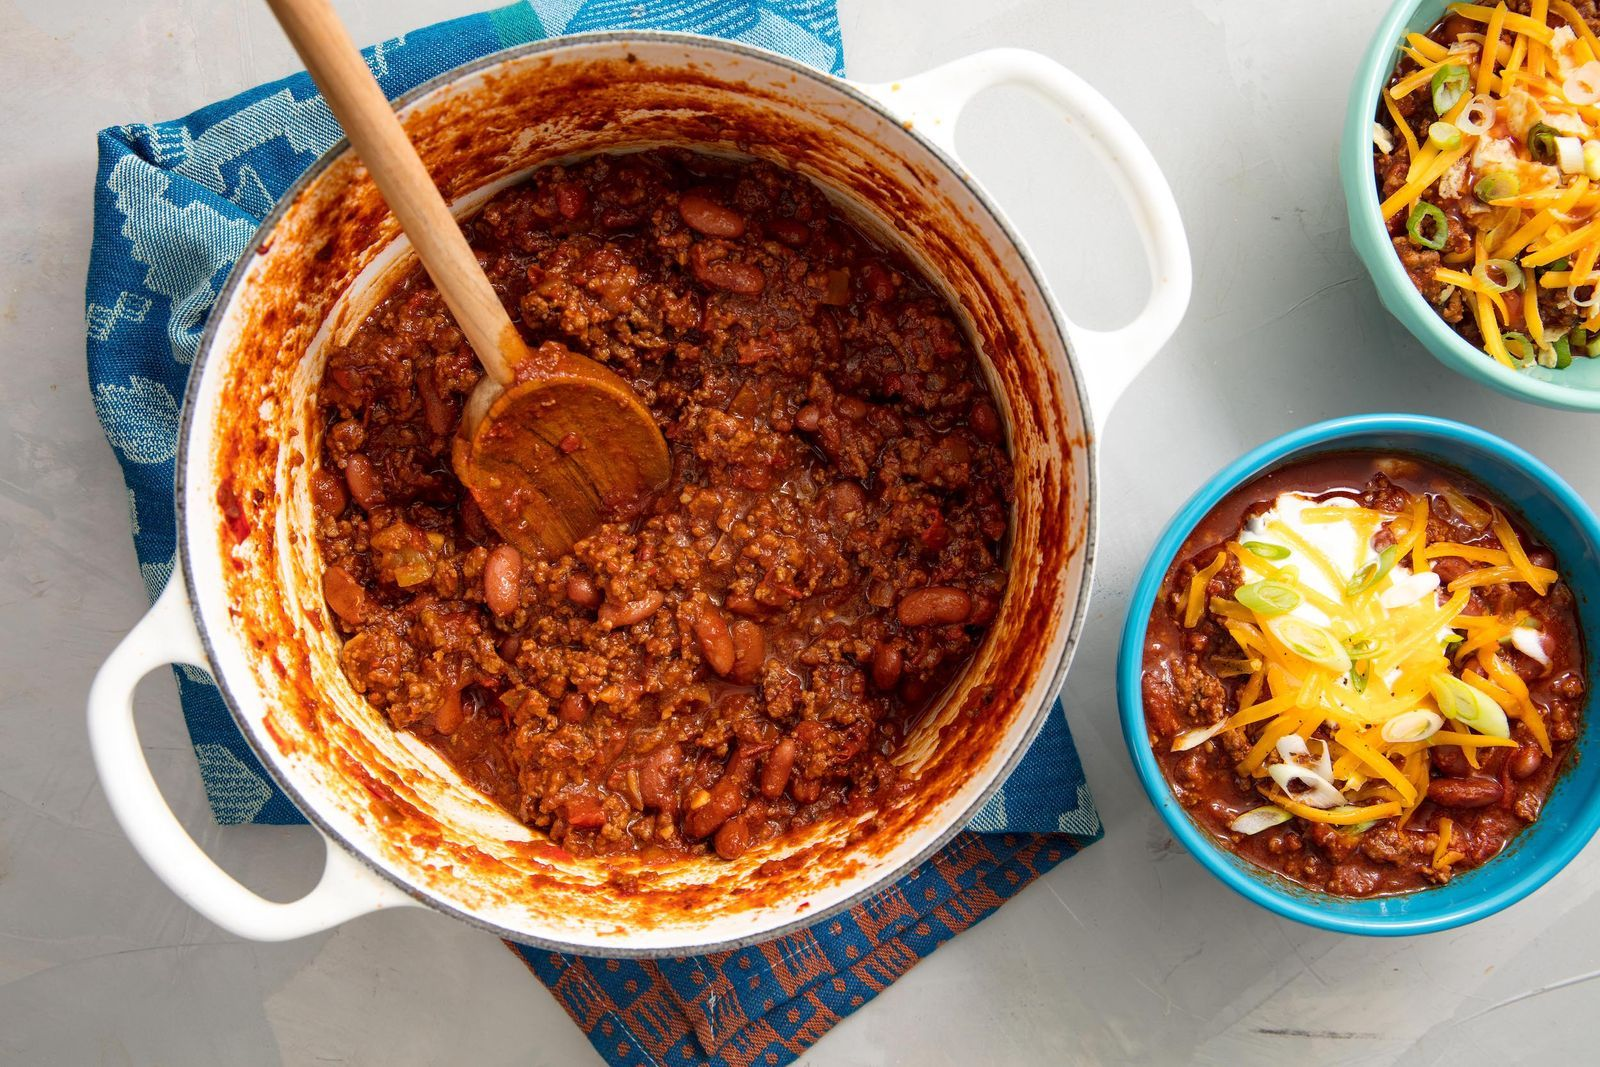 Substitute With Meatless Lightlife Ground Use Both Canned Kidney And Navy Beans And Chopped Jalopena Pepp In 2020 Best Easy Chili Recipe Recipes Beef Chili Recipe